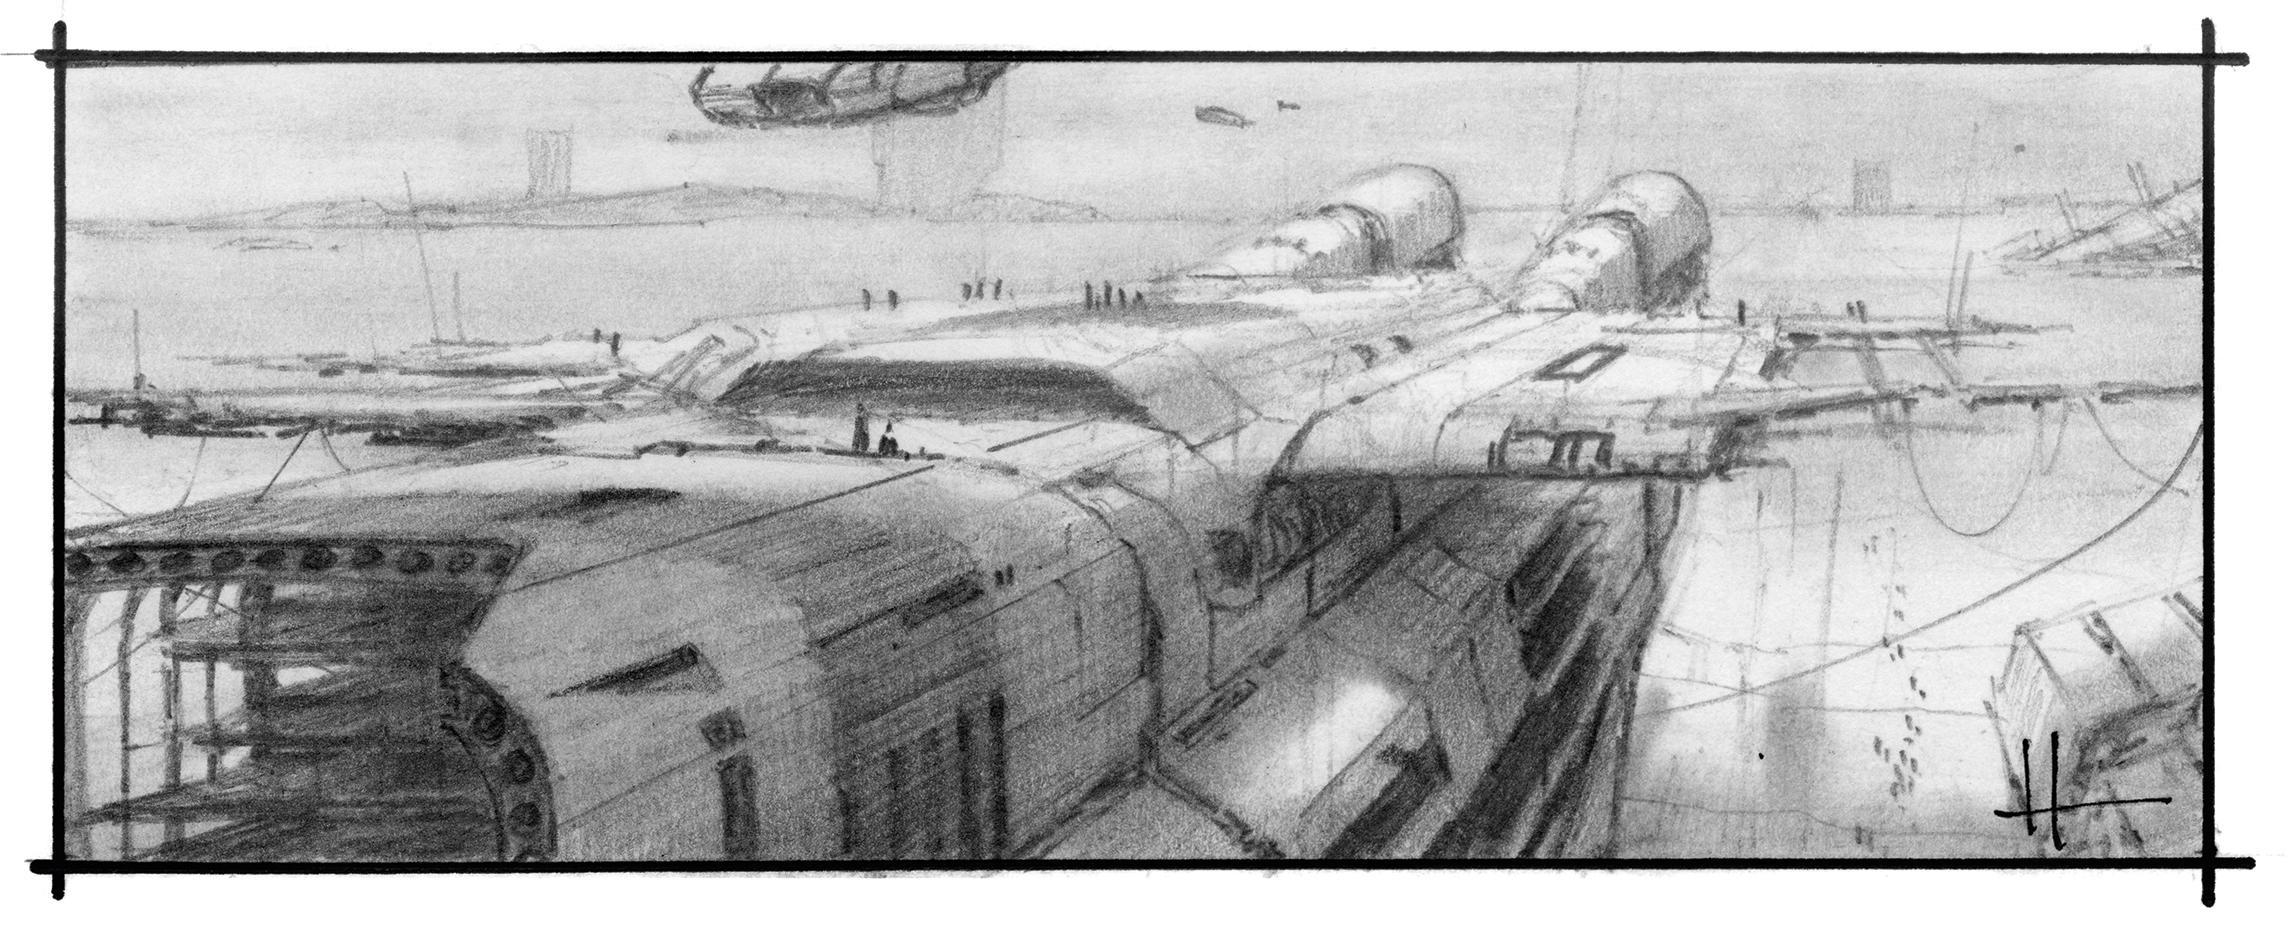 Pencil sketch of a spaceship in a dock